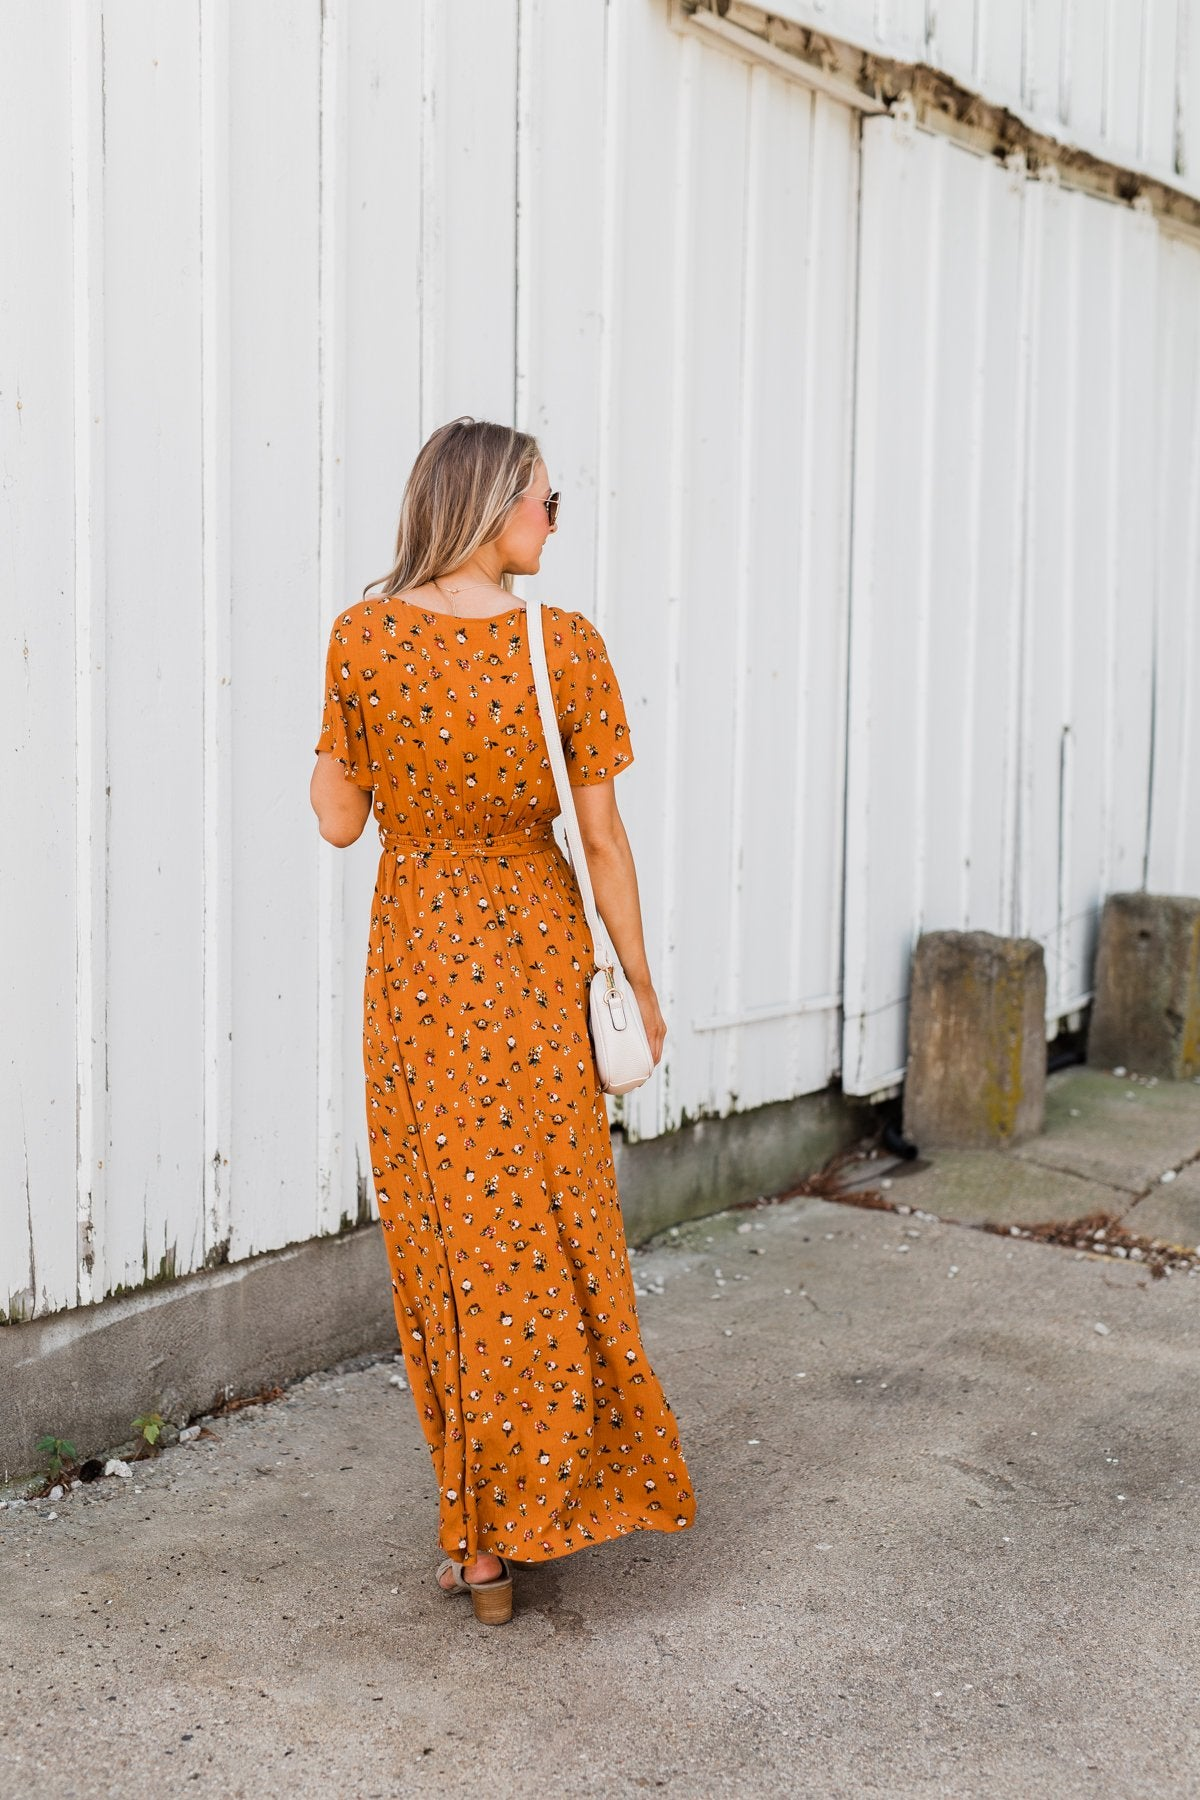 Can't Help But Stare Floral Maxi Dress- Burnt Orange